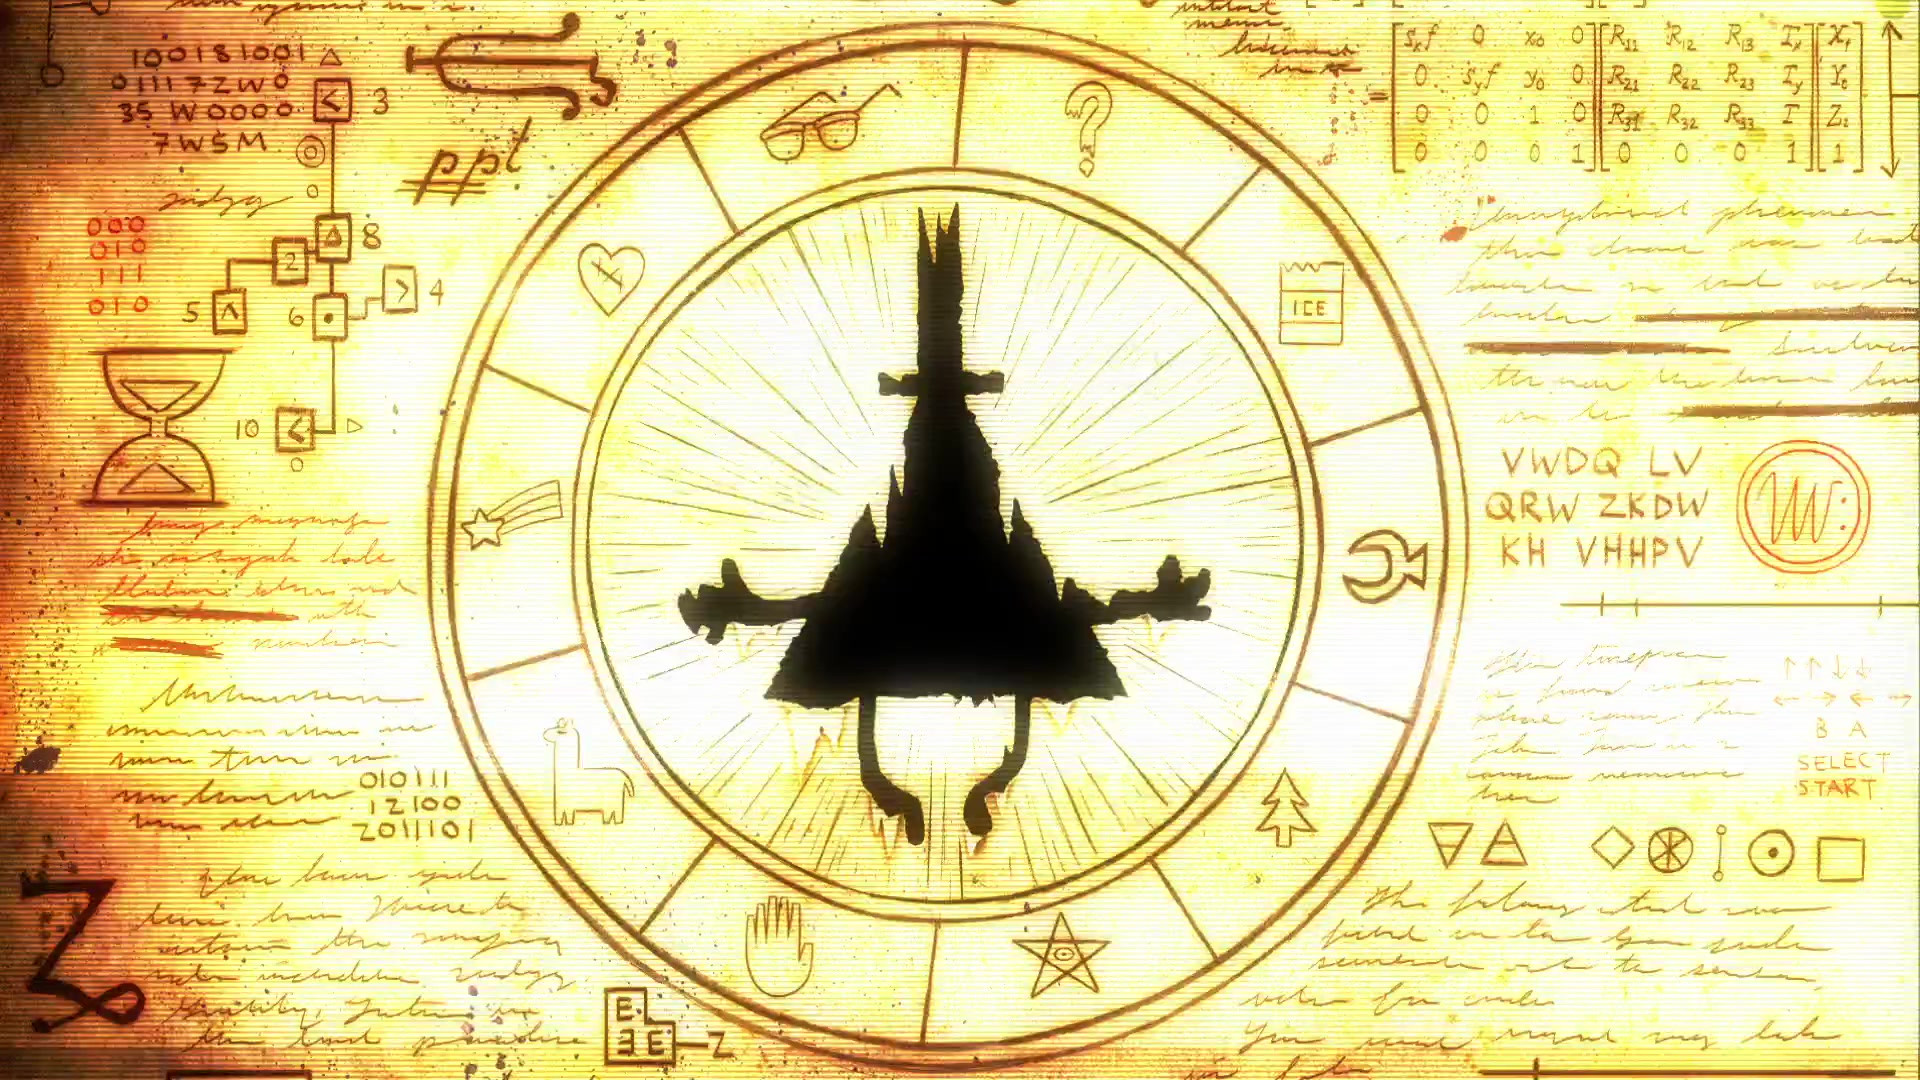 Gravity Falls Bill Cipher Wallpaper 80 images 1920x1080